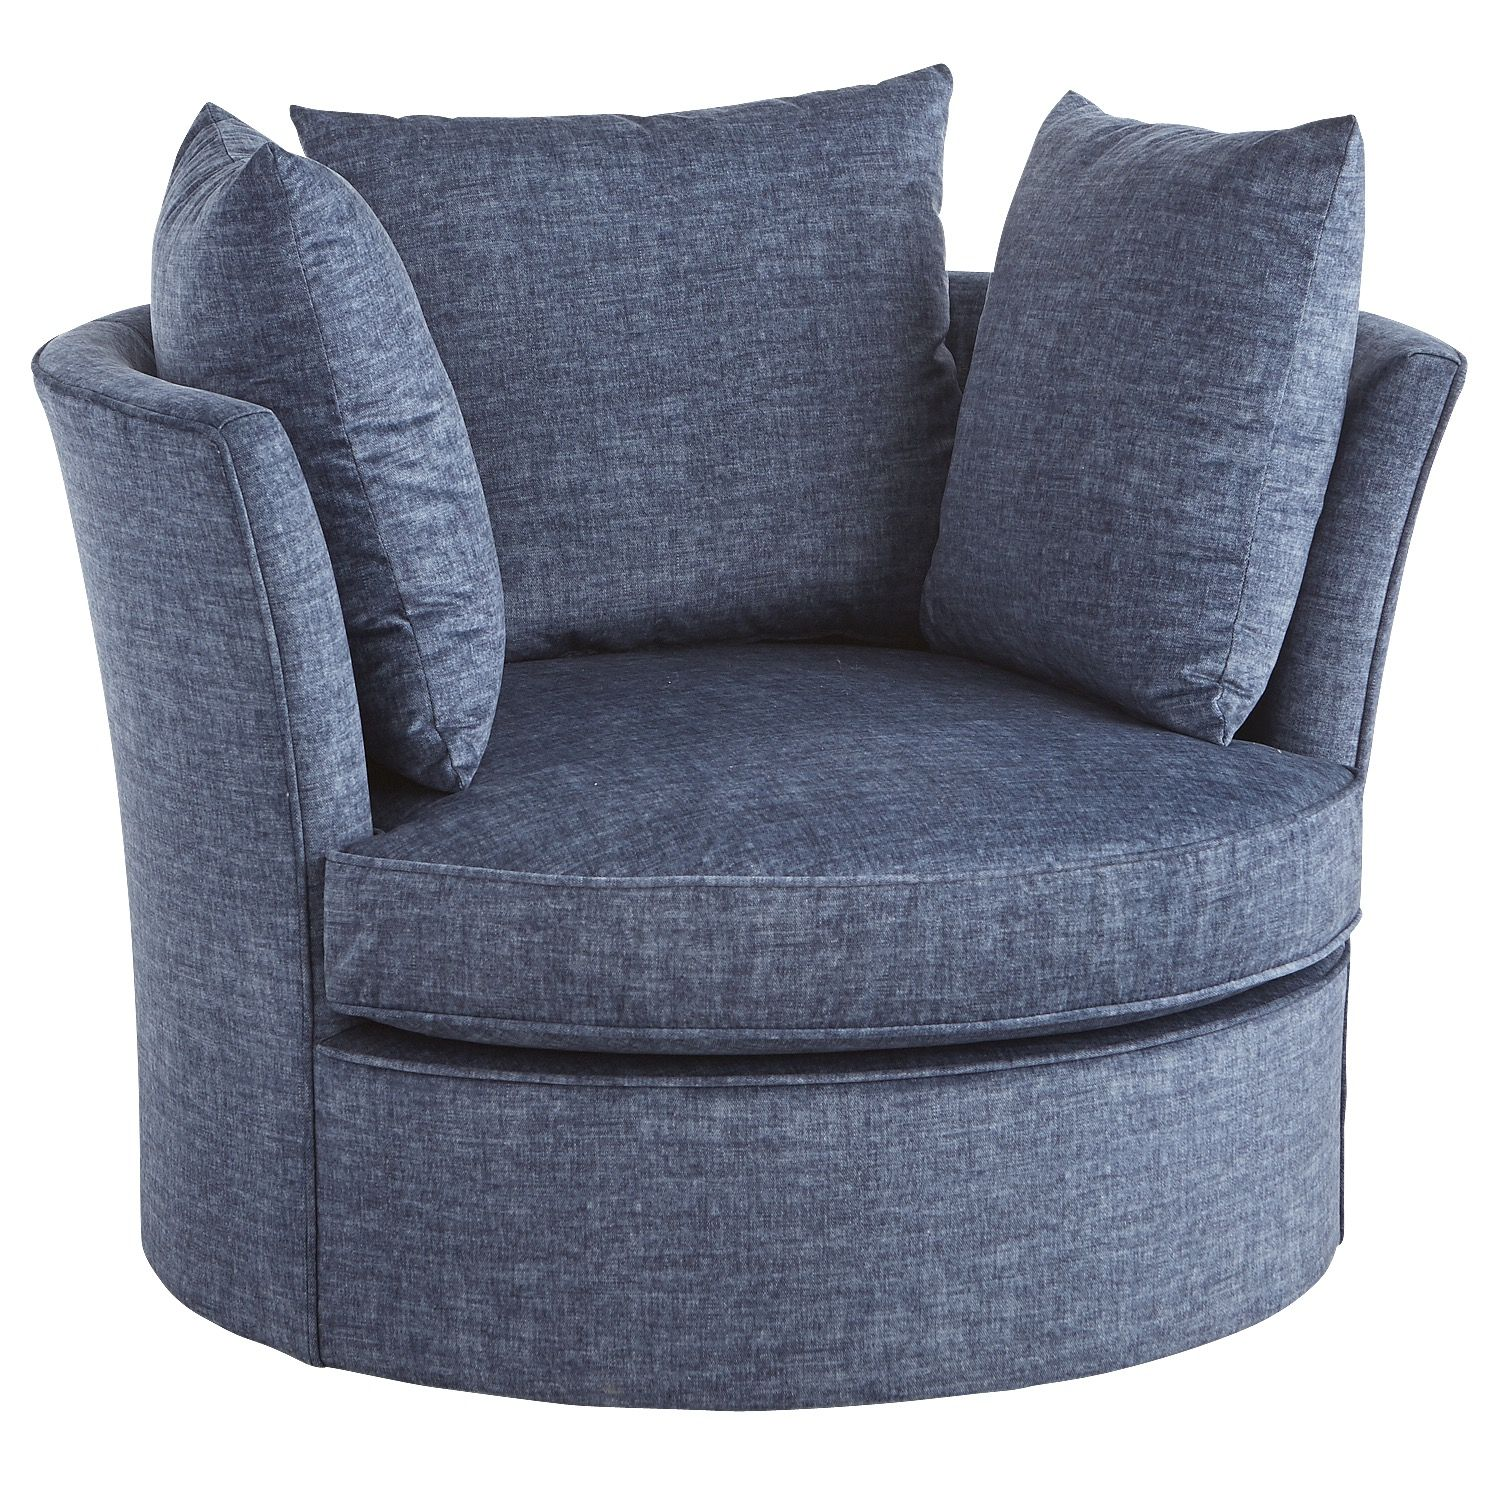 Best Ike Navy Blue Oversized Swivel Chair Swivel Chair Chair 400 x 300